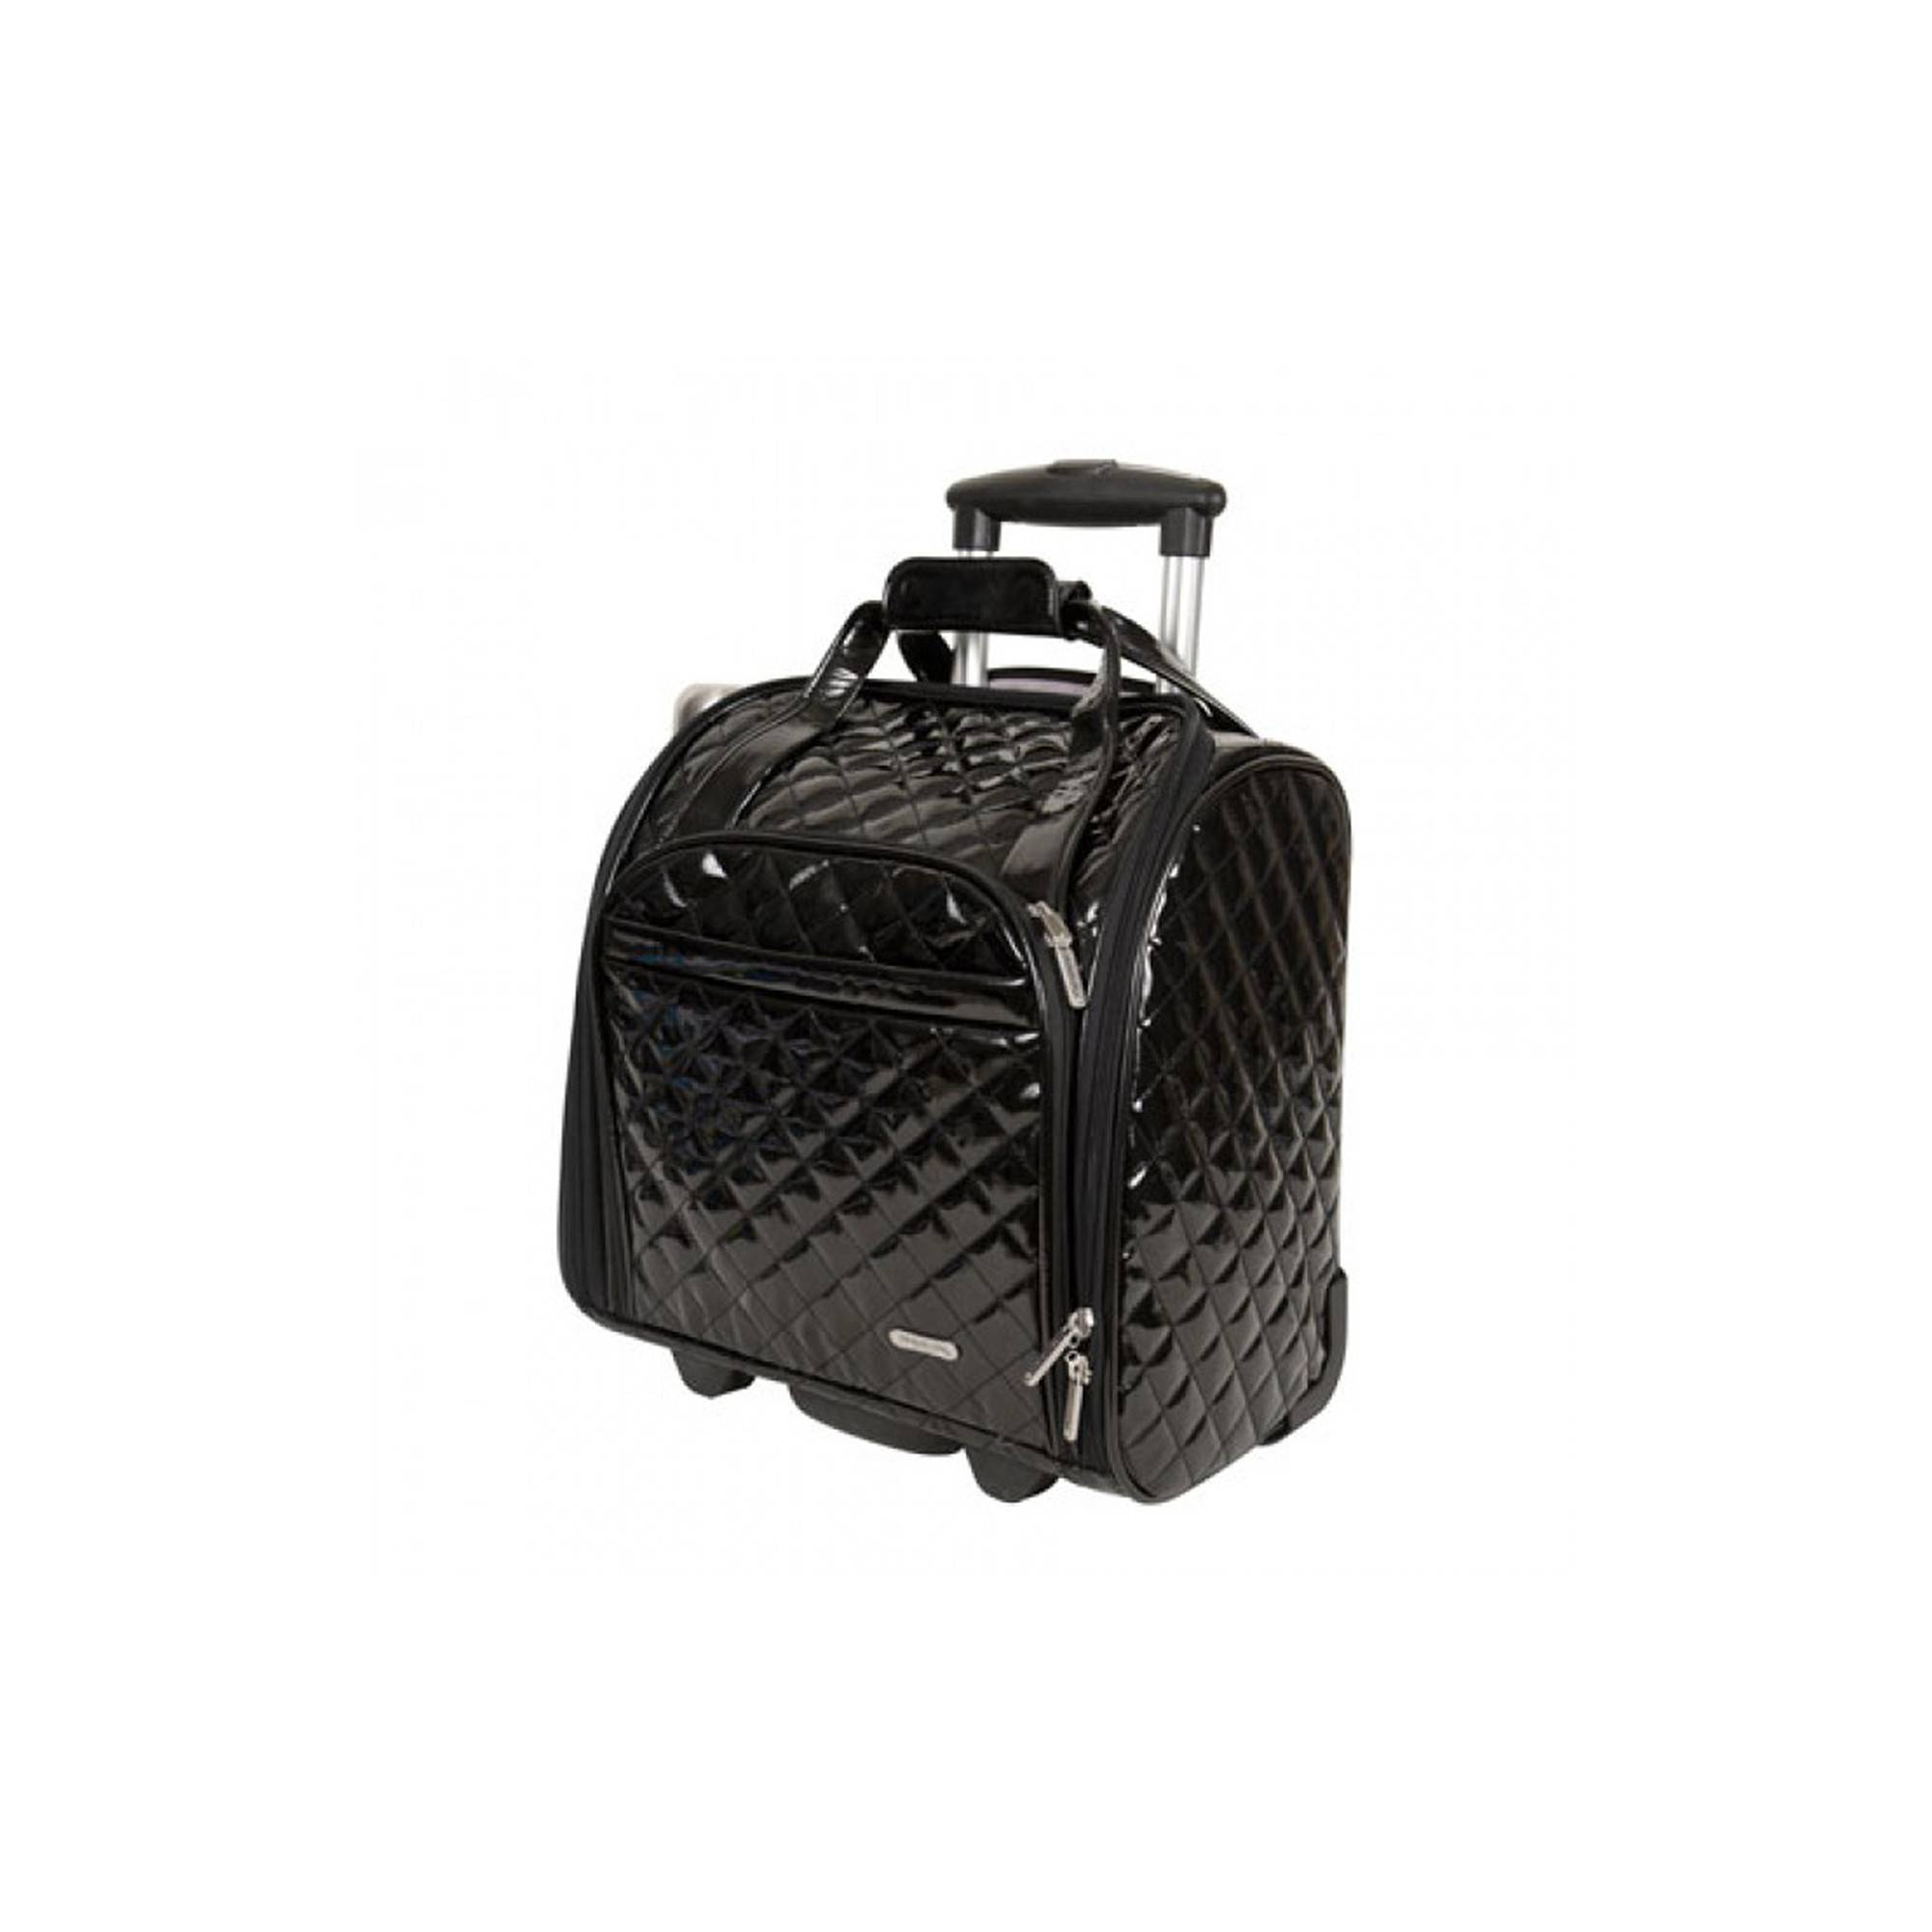 Jpg Travelon Wheeled Underseat Carry On With Back Up Bag 14545 2